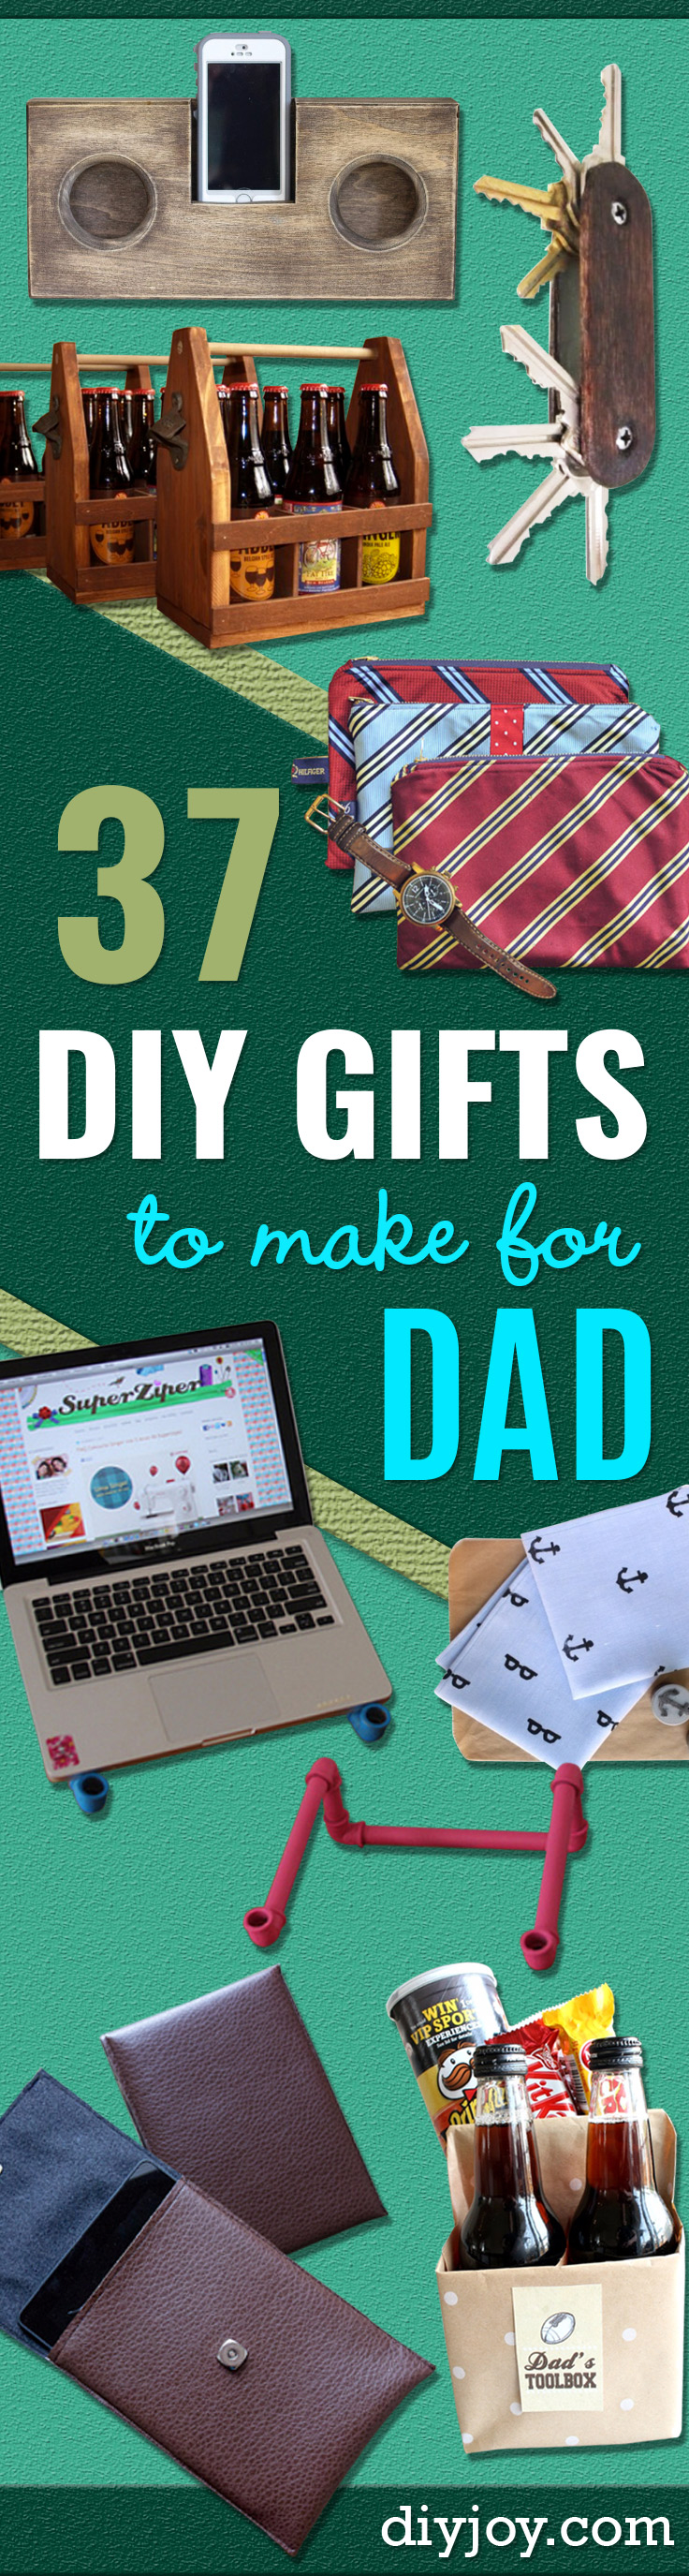 DIY Gifts for Dad - Best Craft Projects and Gift Ideas You Can Make for Your